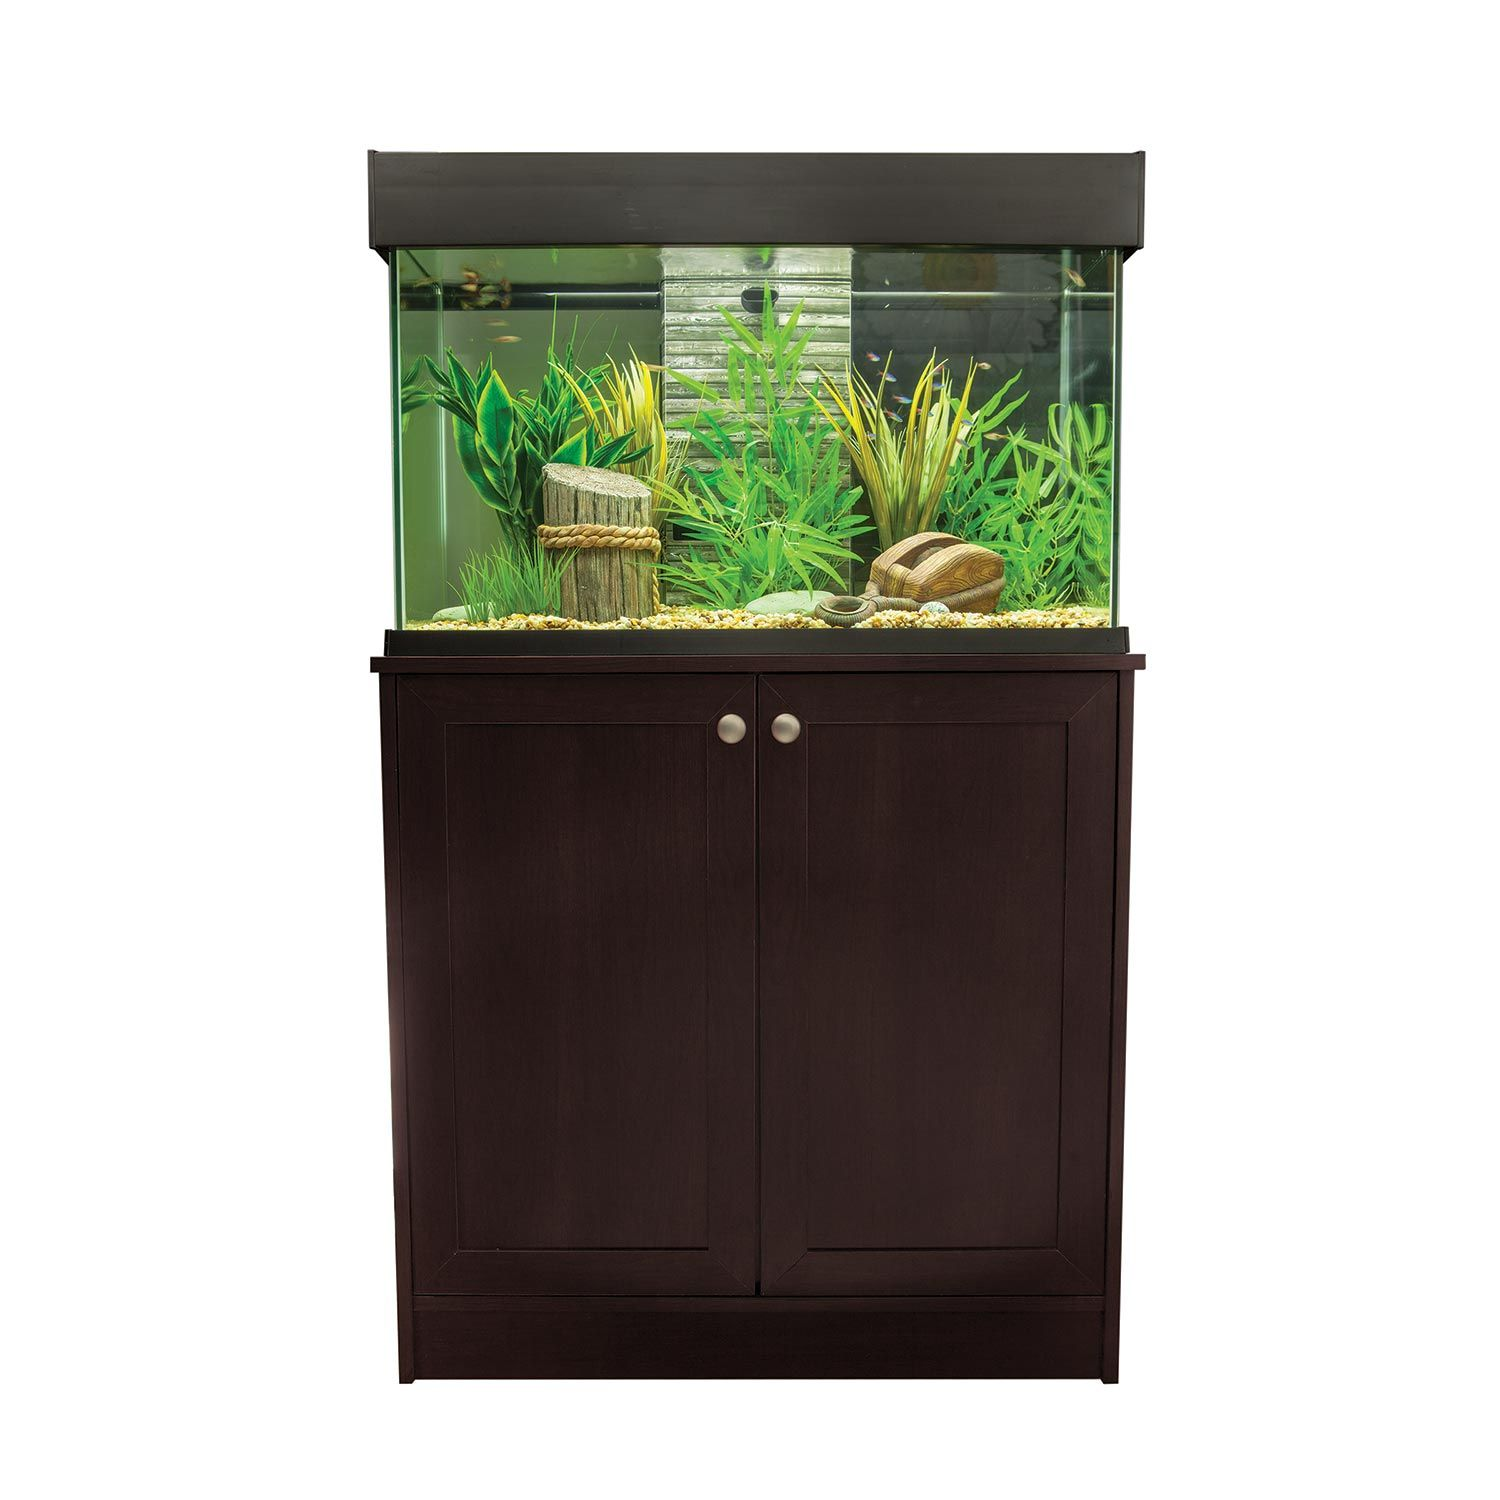 Fluval Accent Aquarium And Cabinet Combo In Espresso Aquarium Stand Aquarium Fish Tank